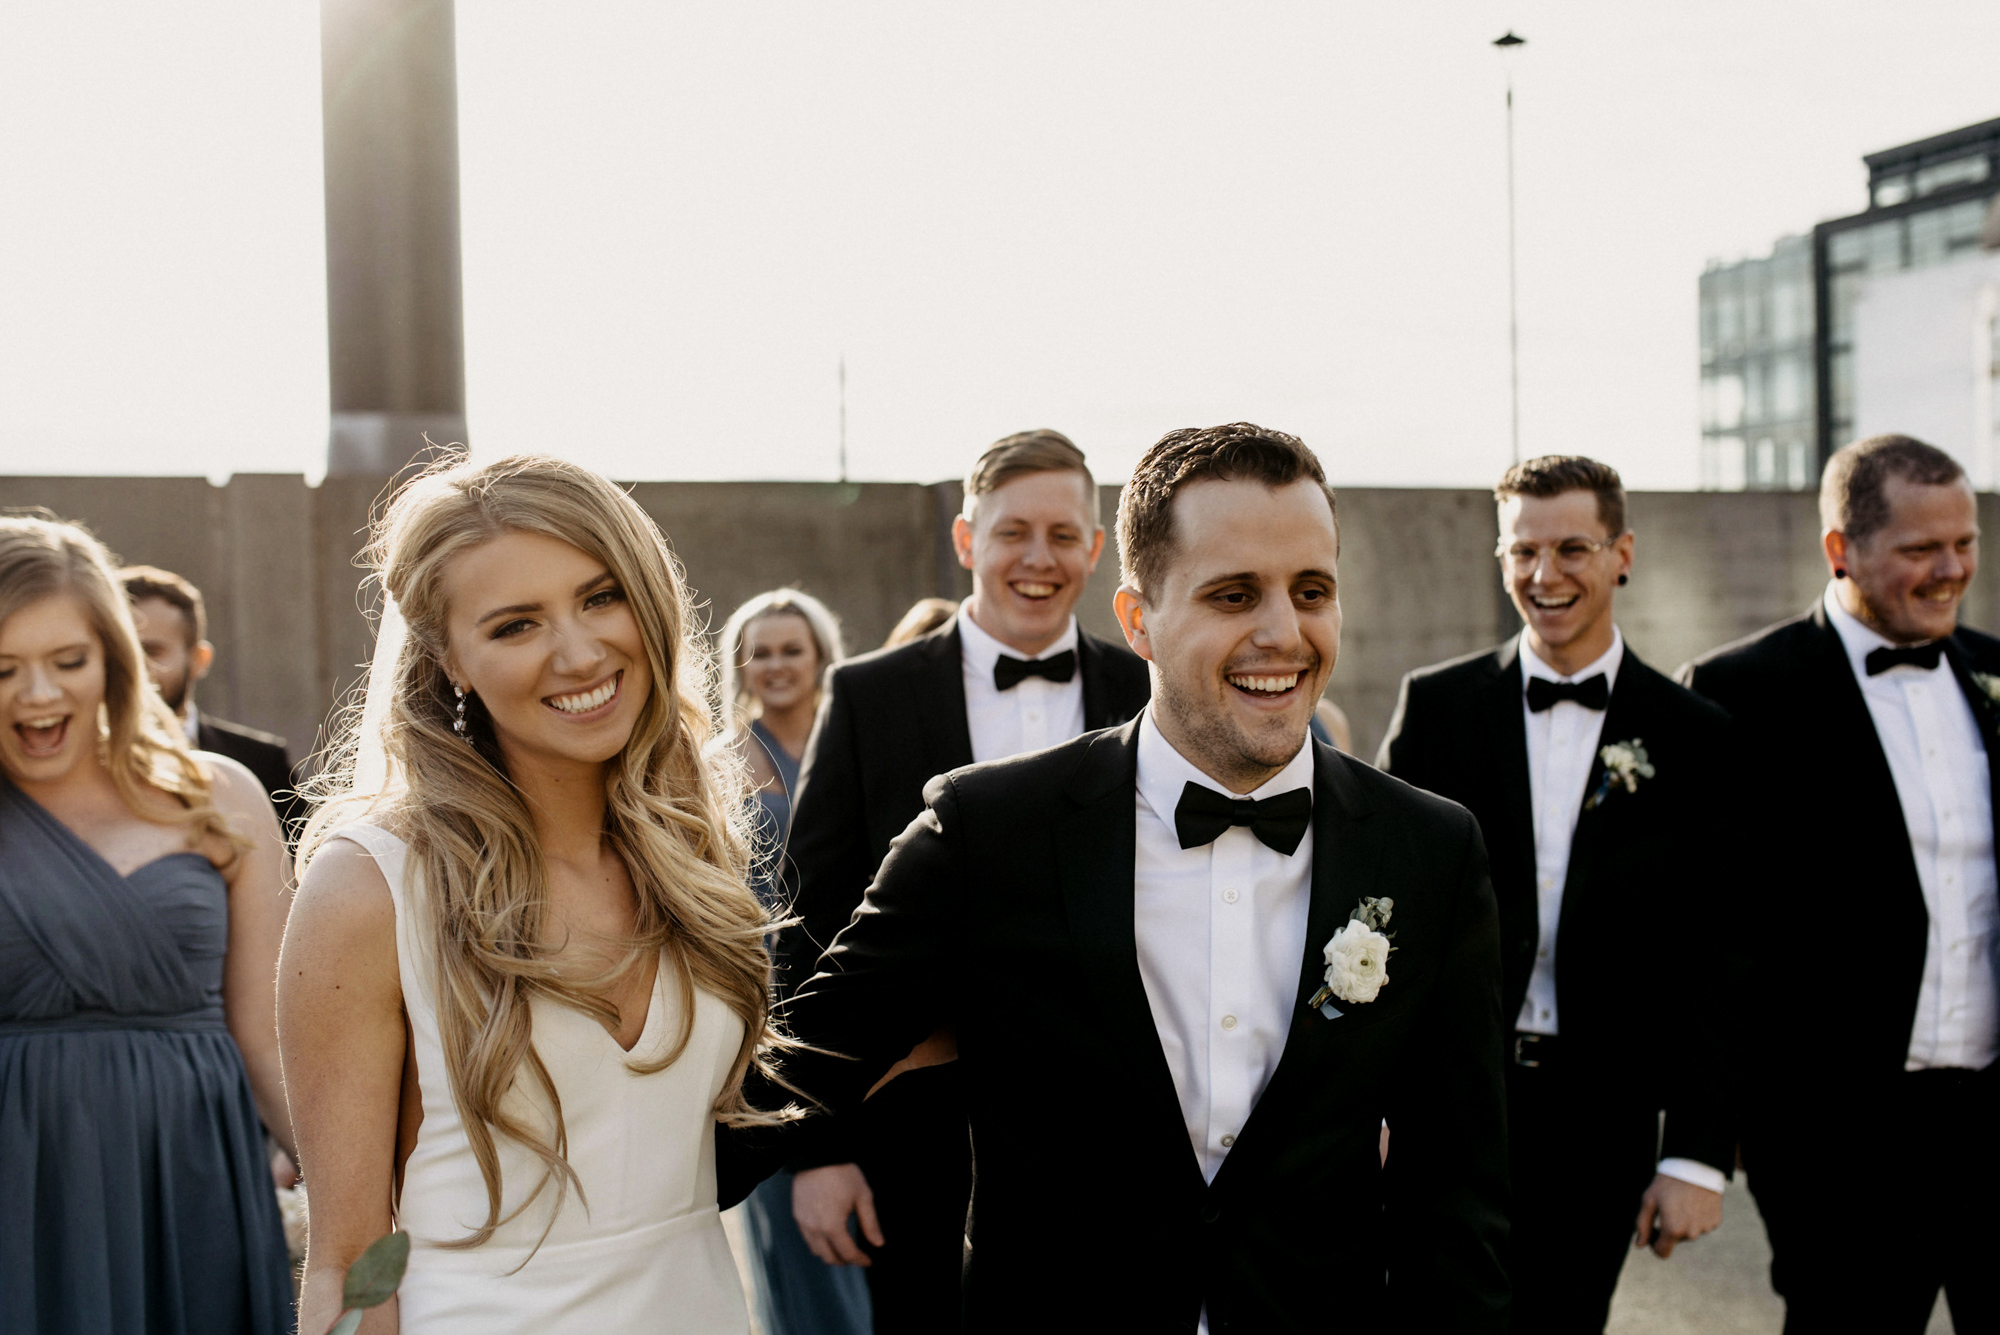 seattle-wedding-sarahseven-bridal-party-rooftop-downtown-2563-17.jpg